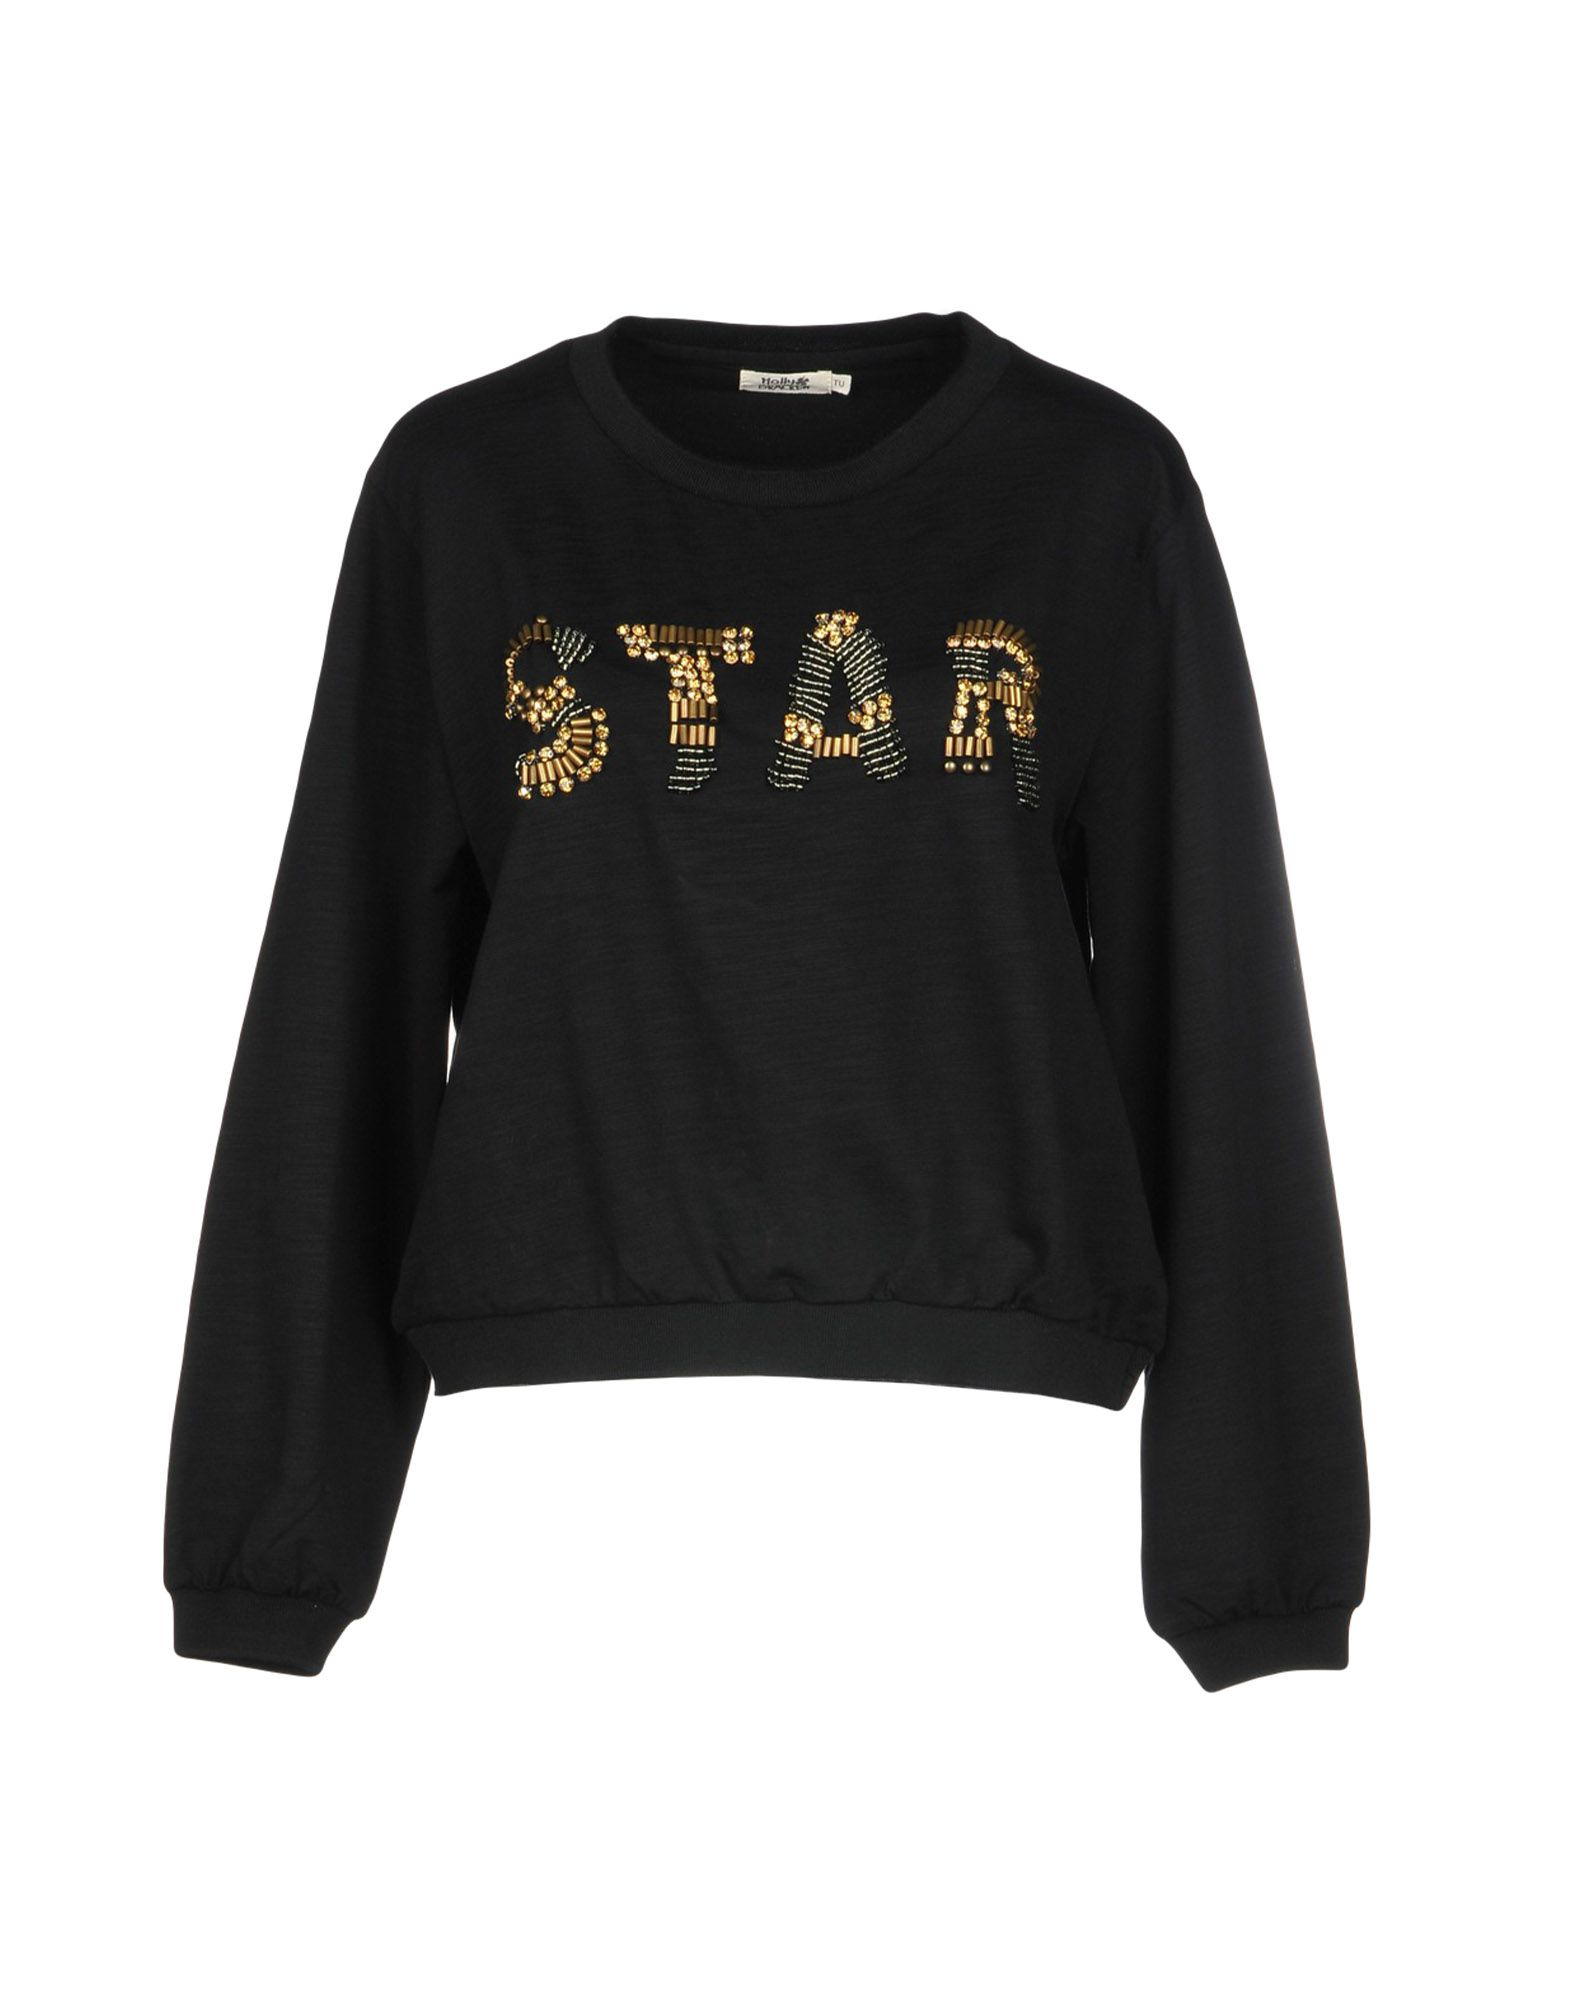 MOLLY BRACKEN Sweatshirt in Black